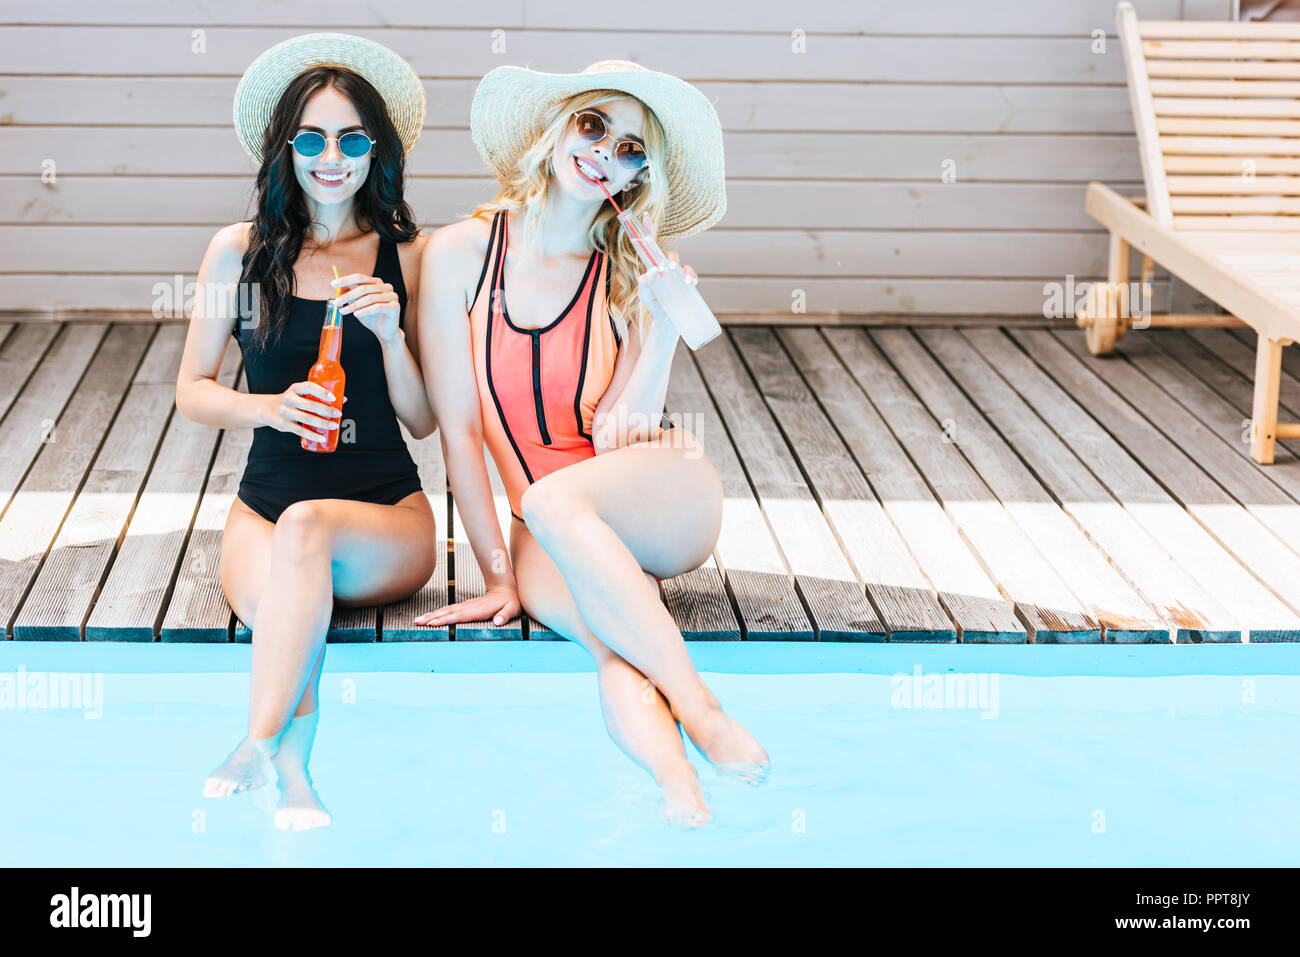 beautiful young women in swimwear drinking summer beverages and smiling at camera near pool - Stock Image